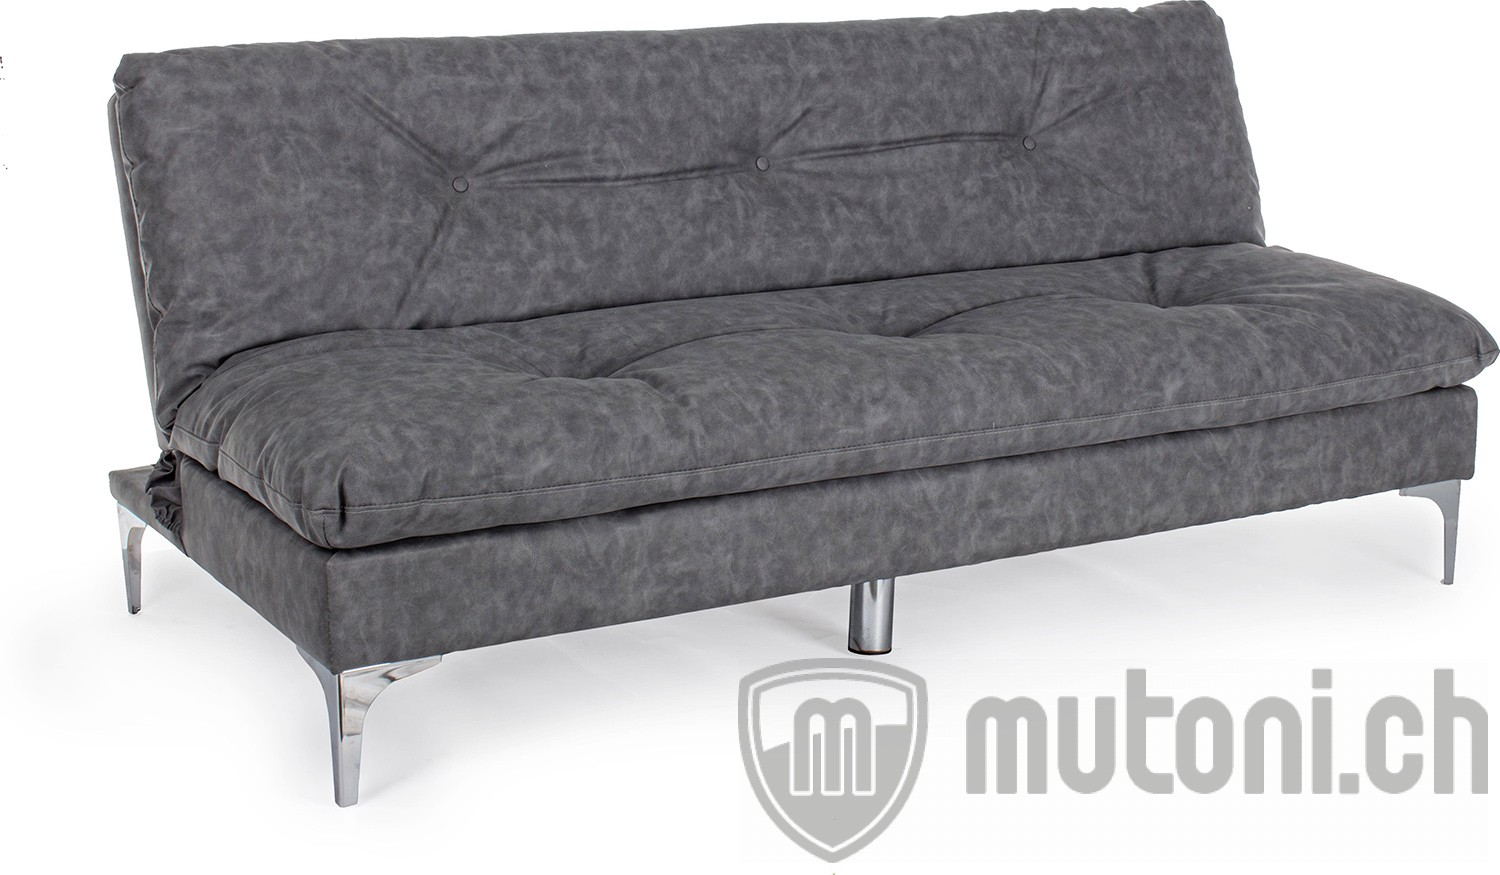 Bettsofa Grau Bettsofa Adrien Vintage Grau Bettsofas Sofas And Couches